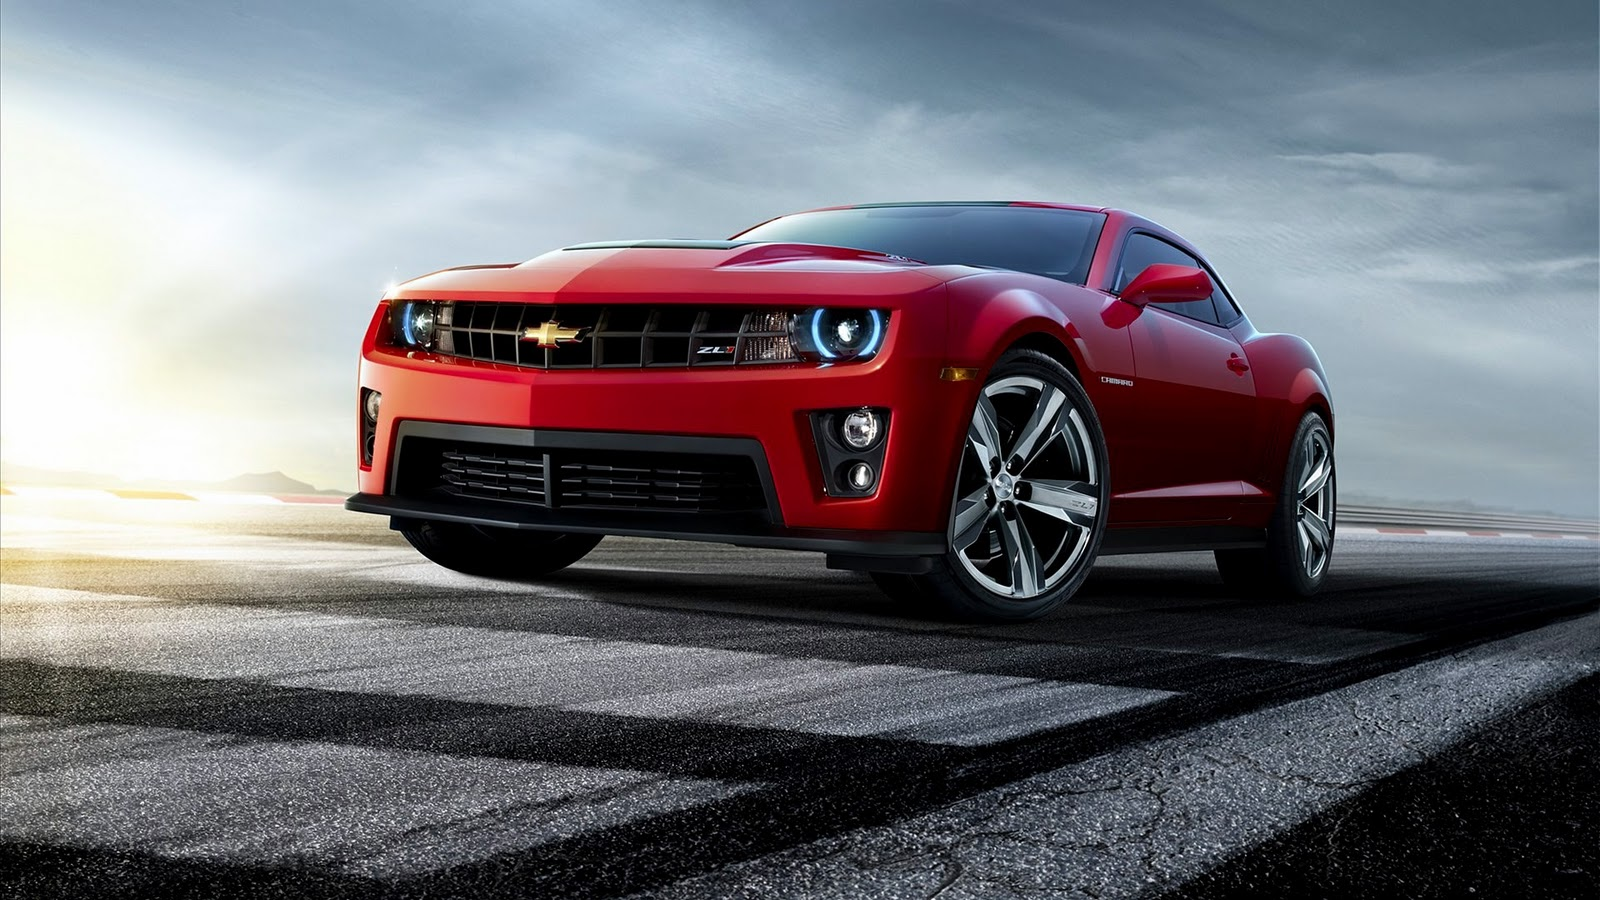 Chevrolet Camaro ZL1 Red HD Wallpaper Download Wallpapers in HD 1600x900